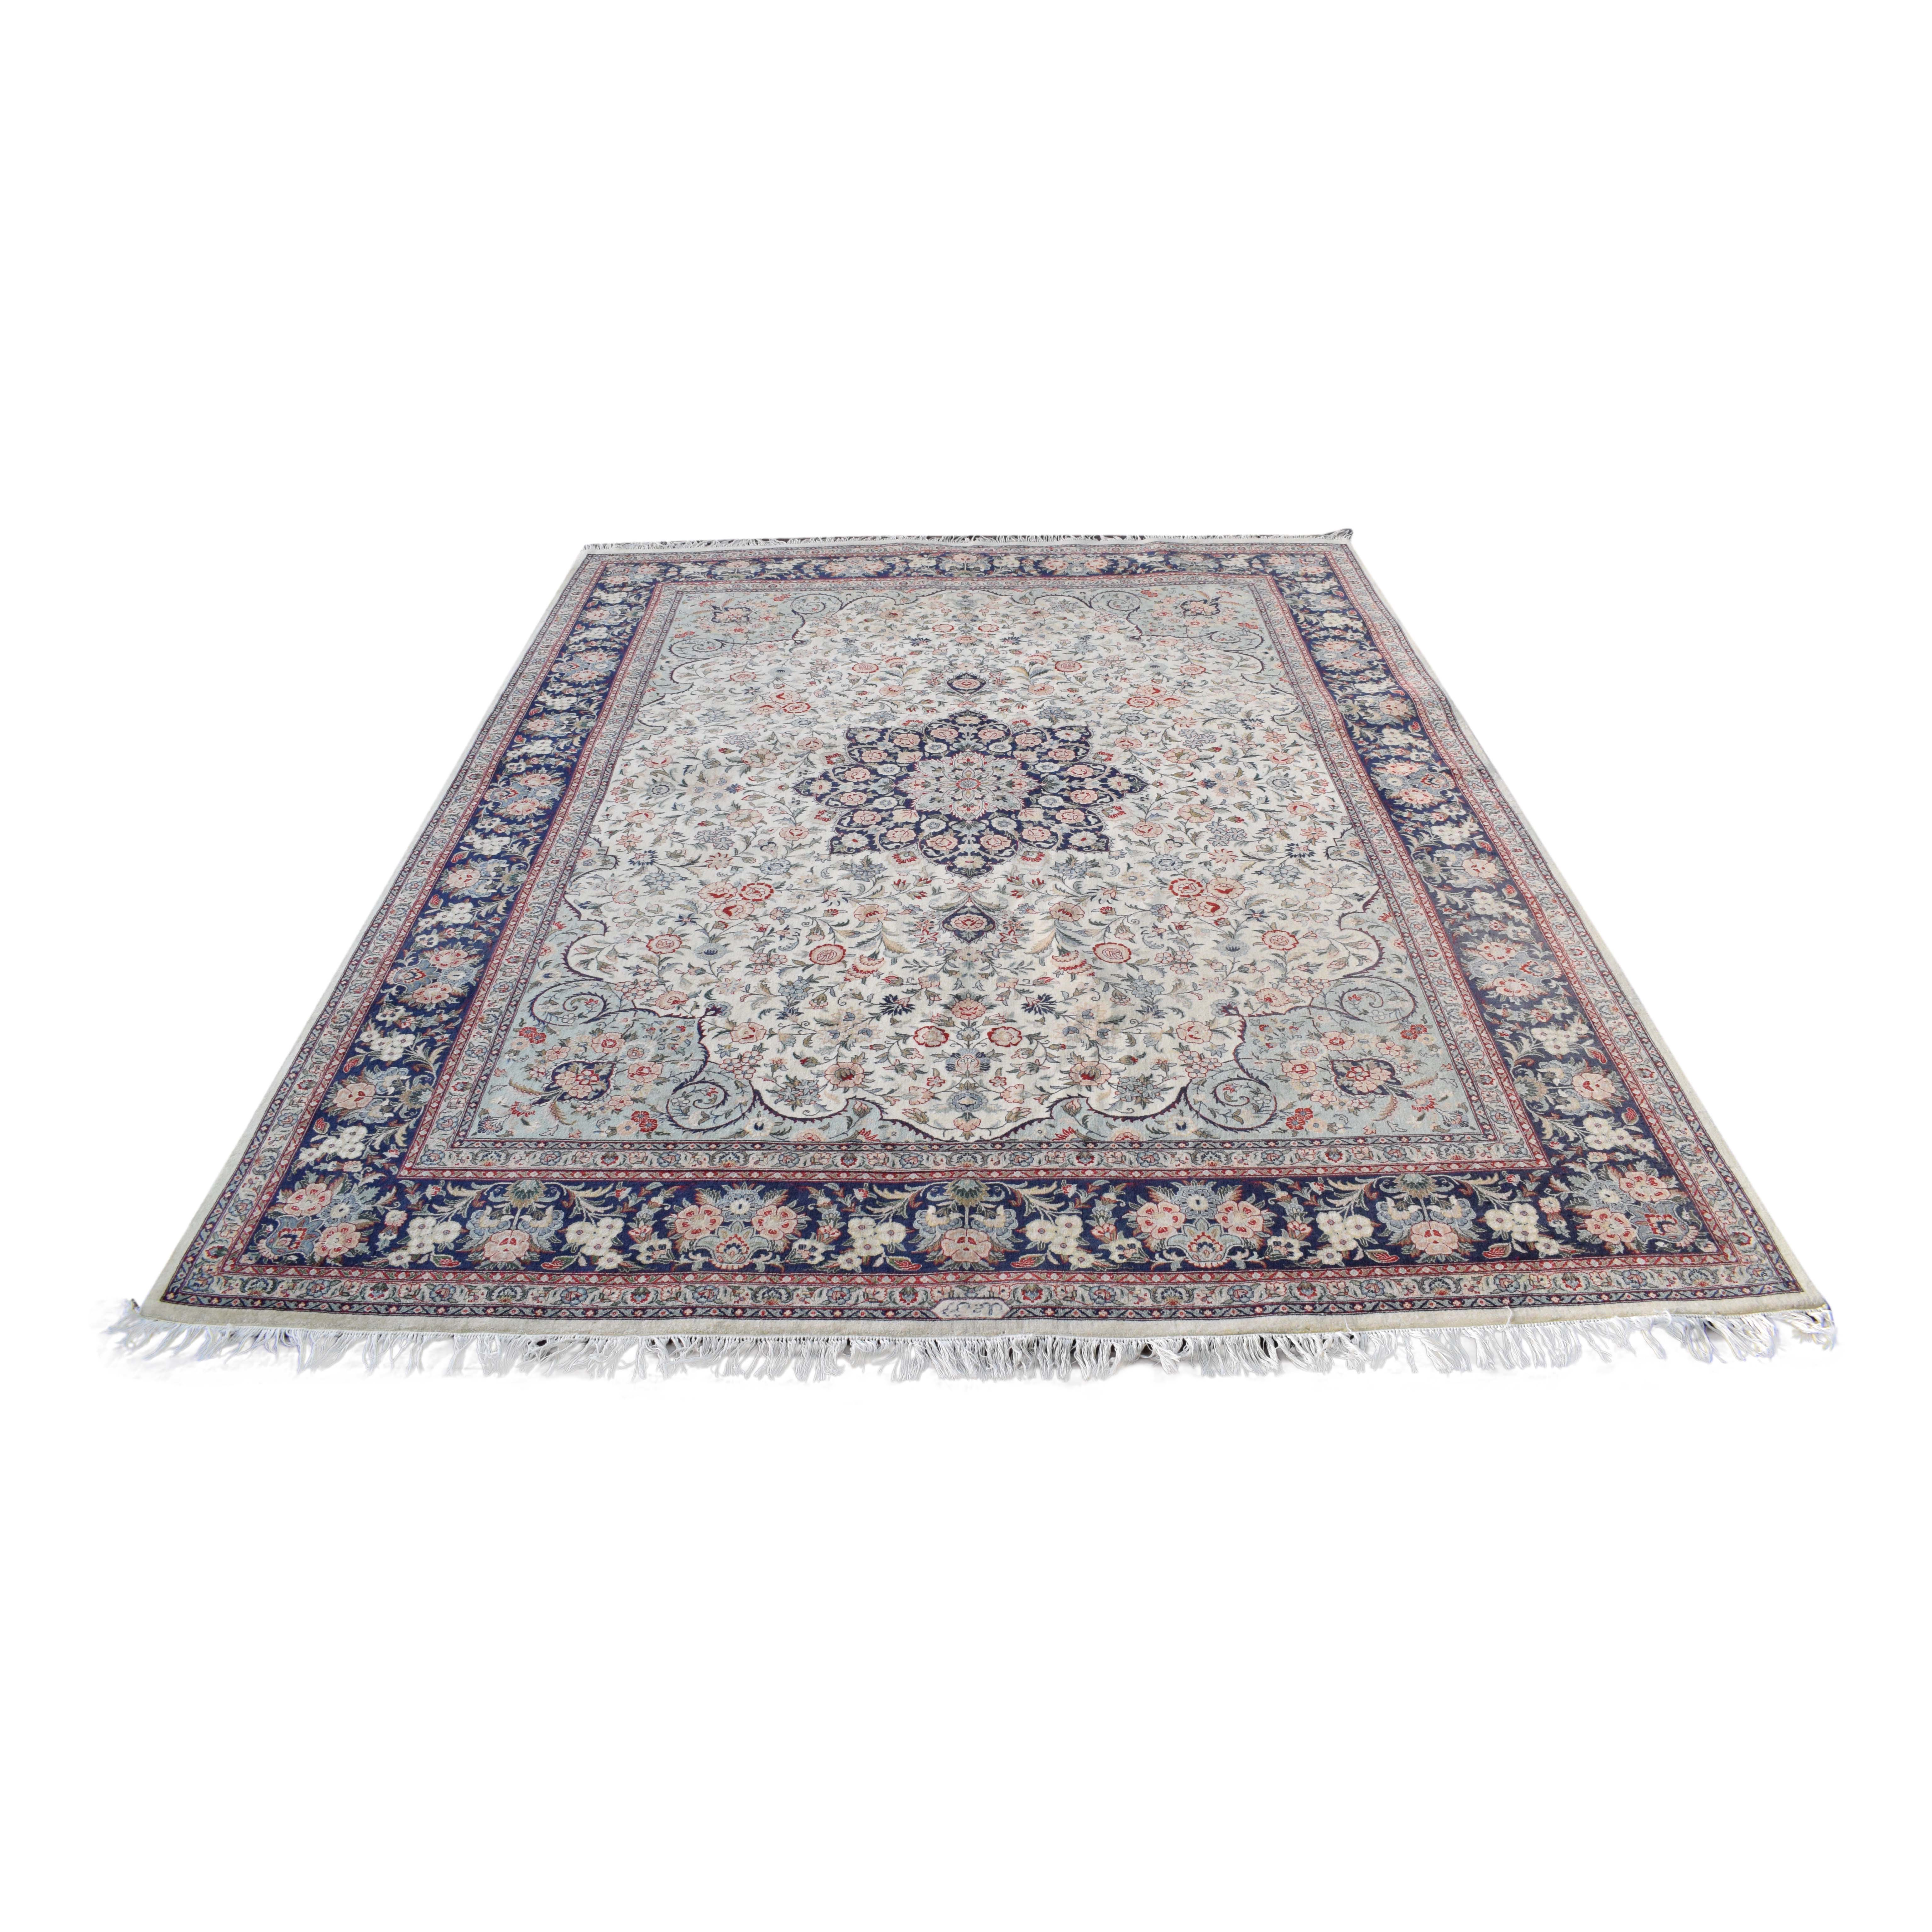 Persian Style Area Rug price